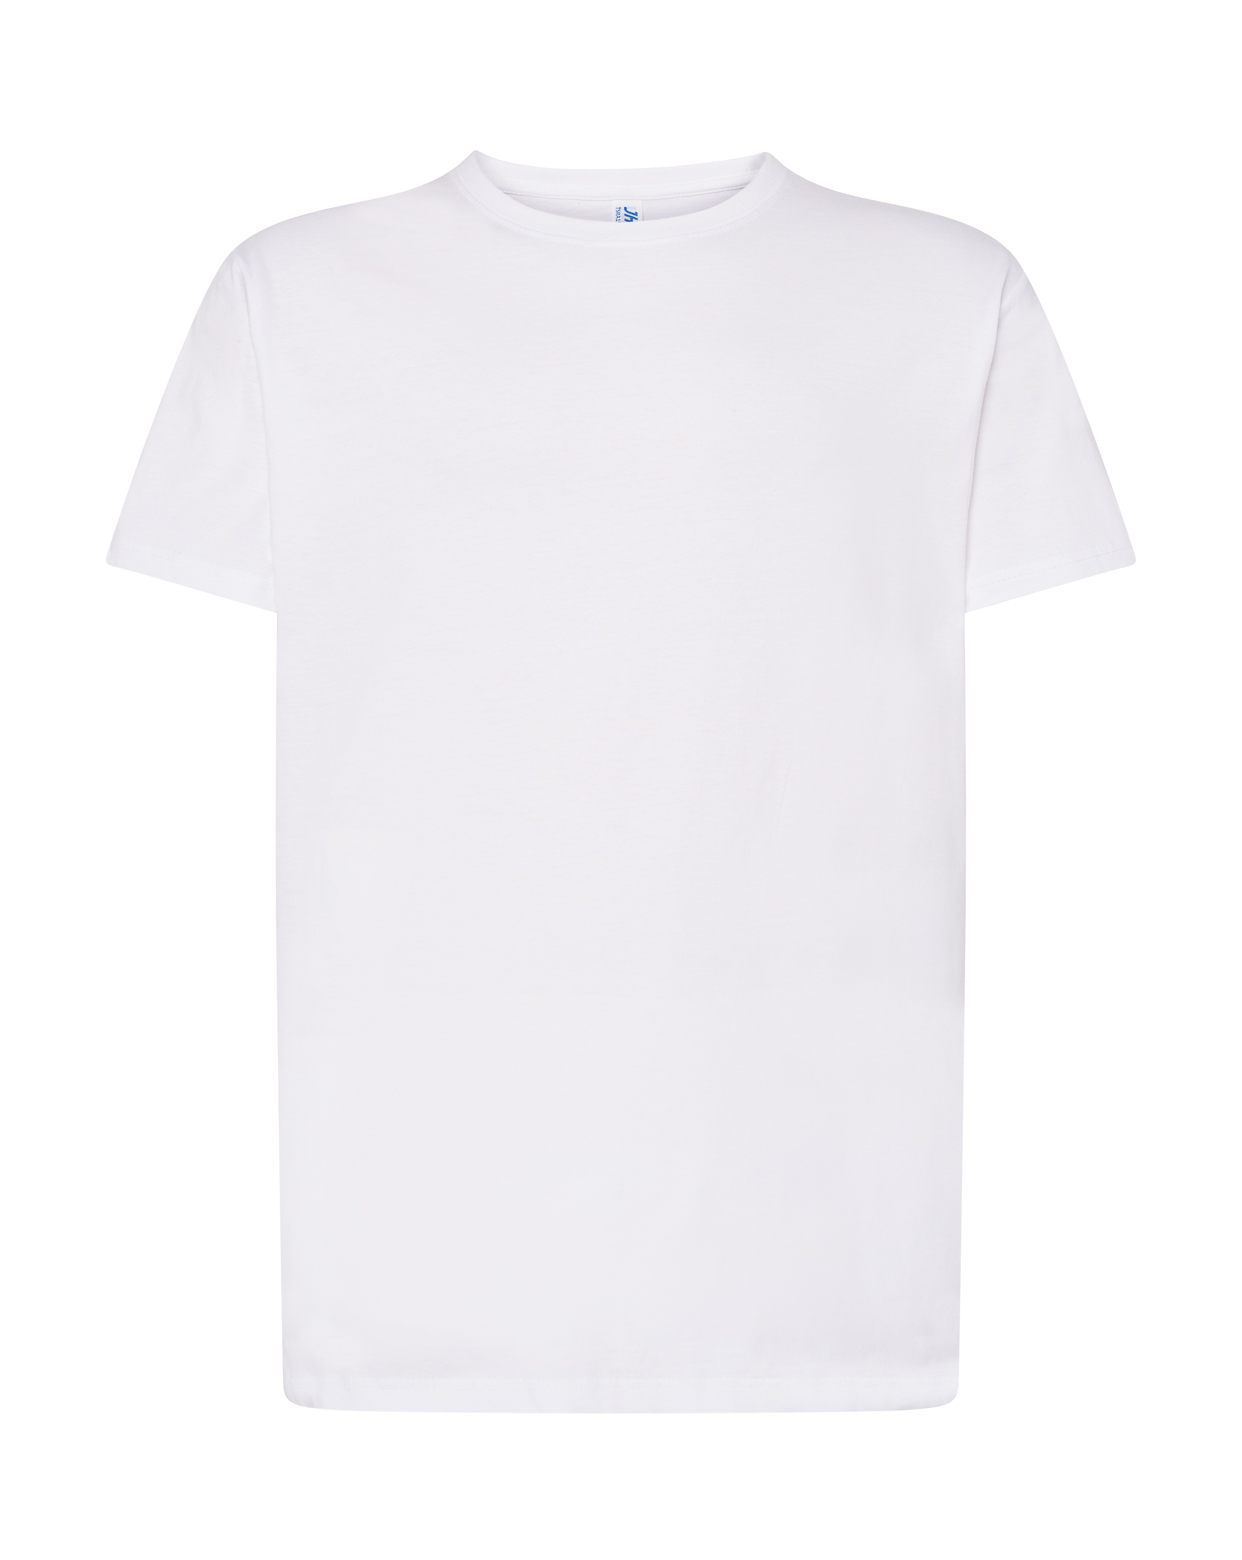 WHITE LONG T-SHIRT KING SIZE - TSRA150WLTKS